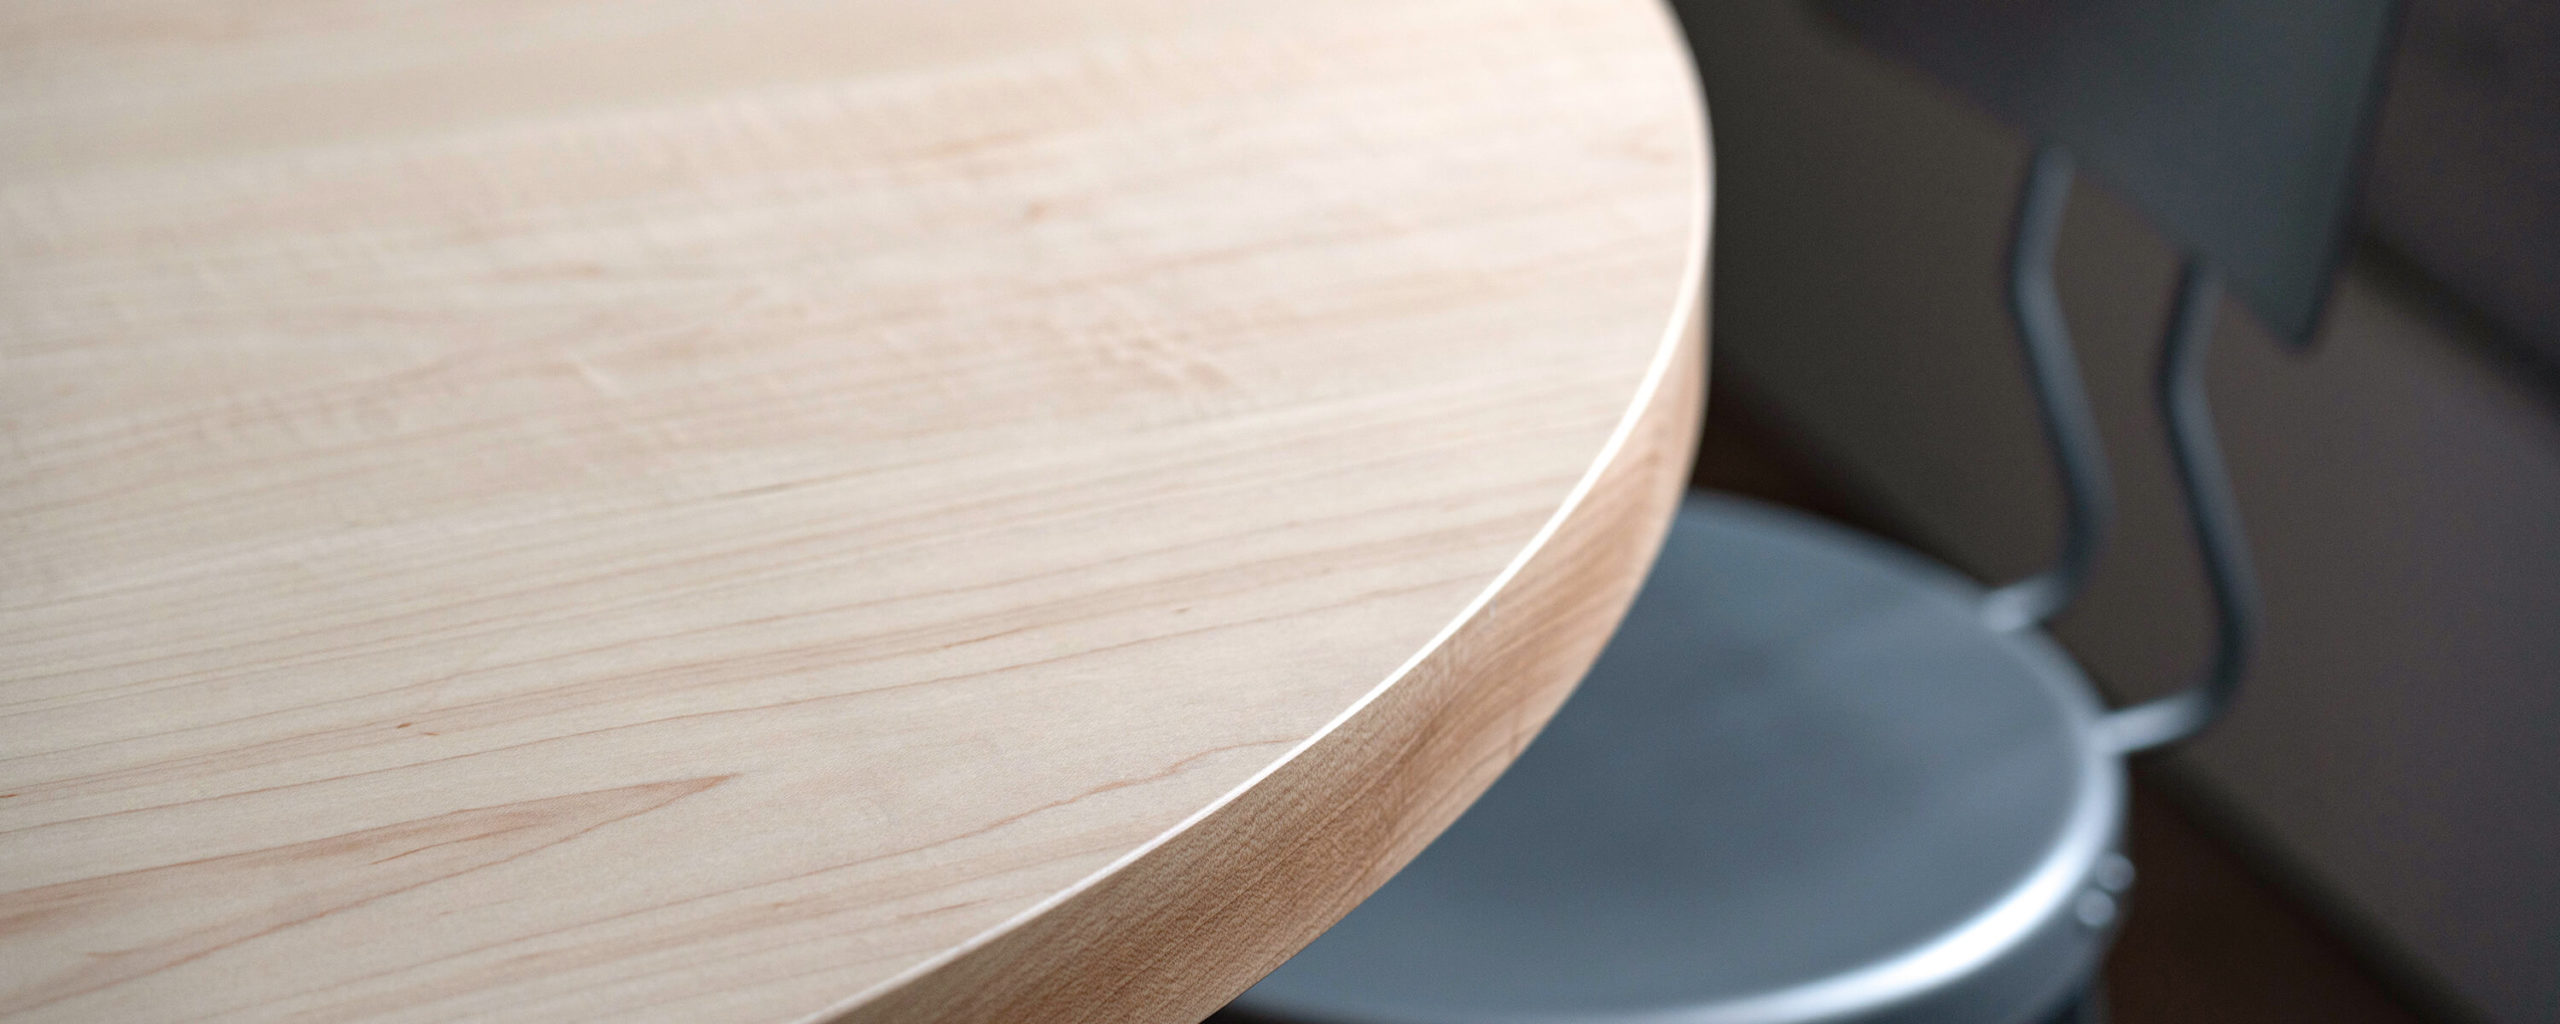 maple table scaled - Crow Works